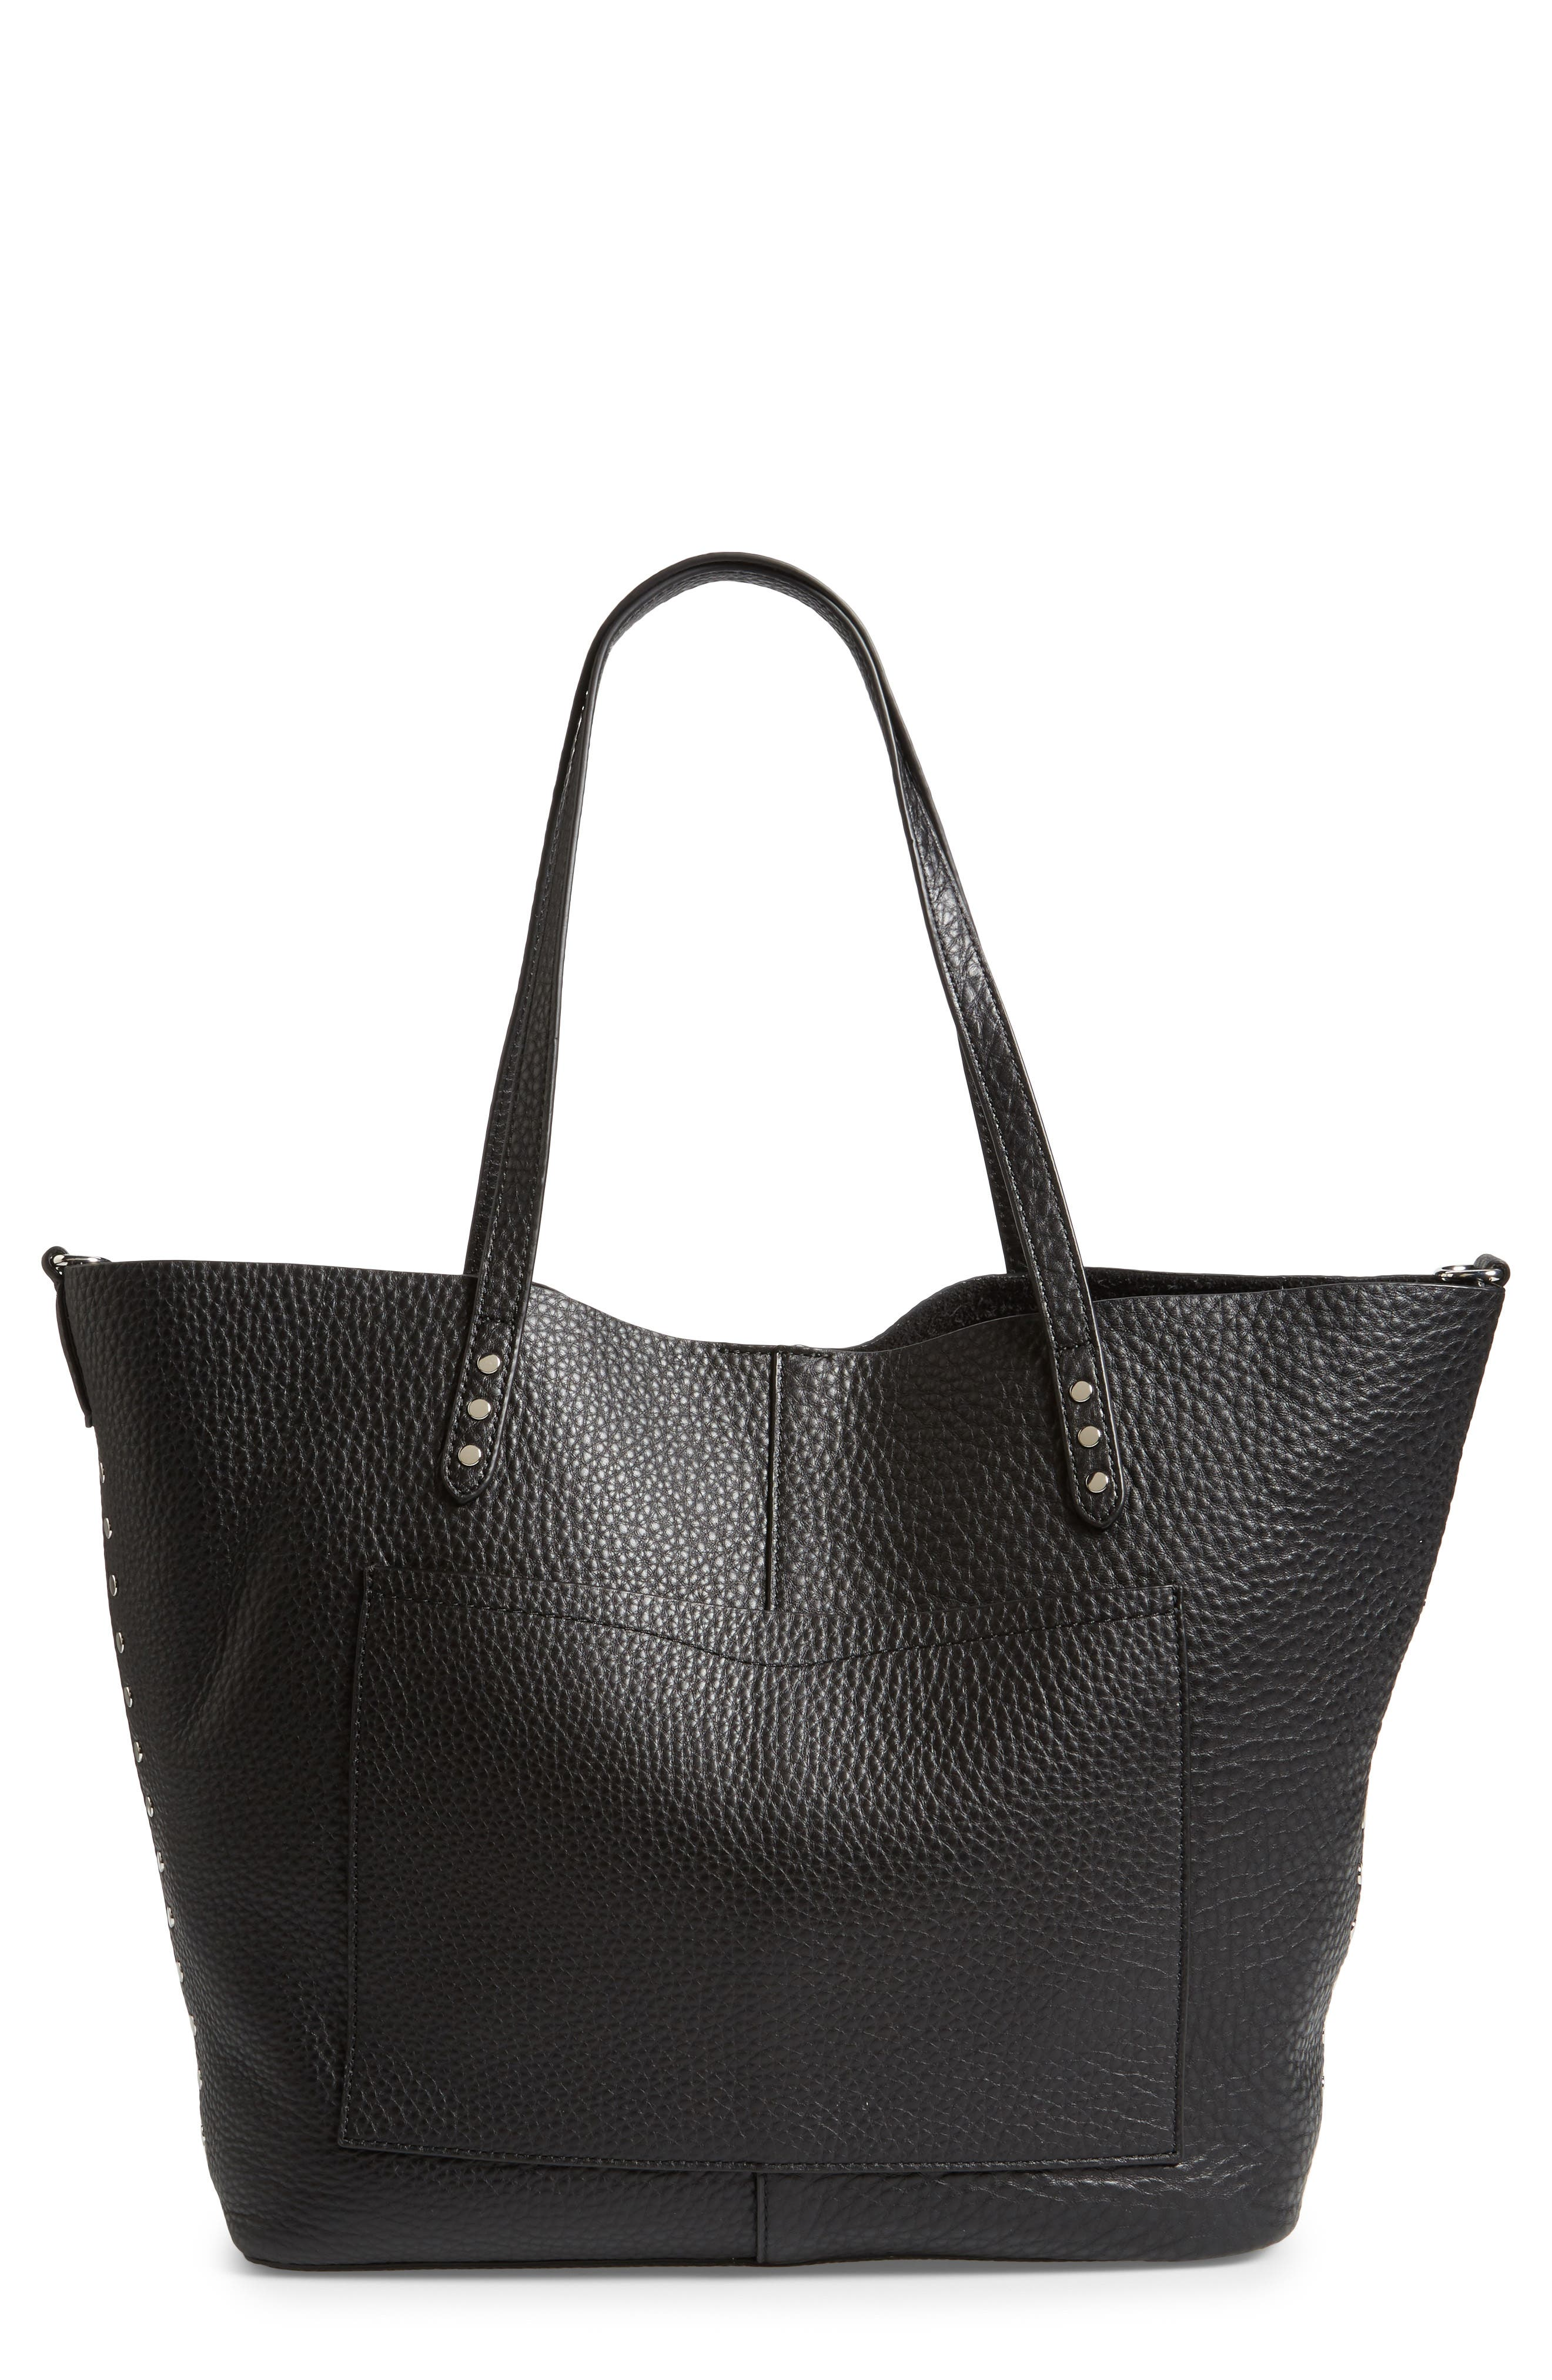 Rebecca Minkoff Leather Baby Bag